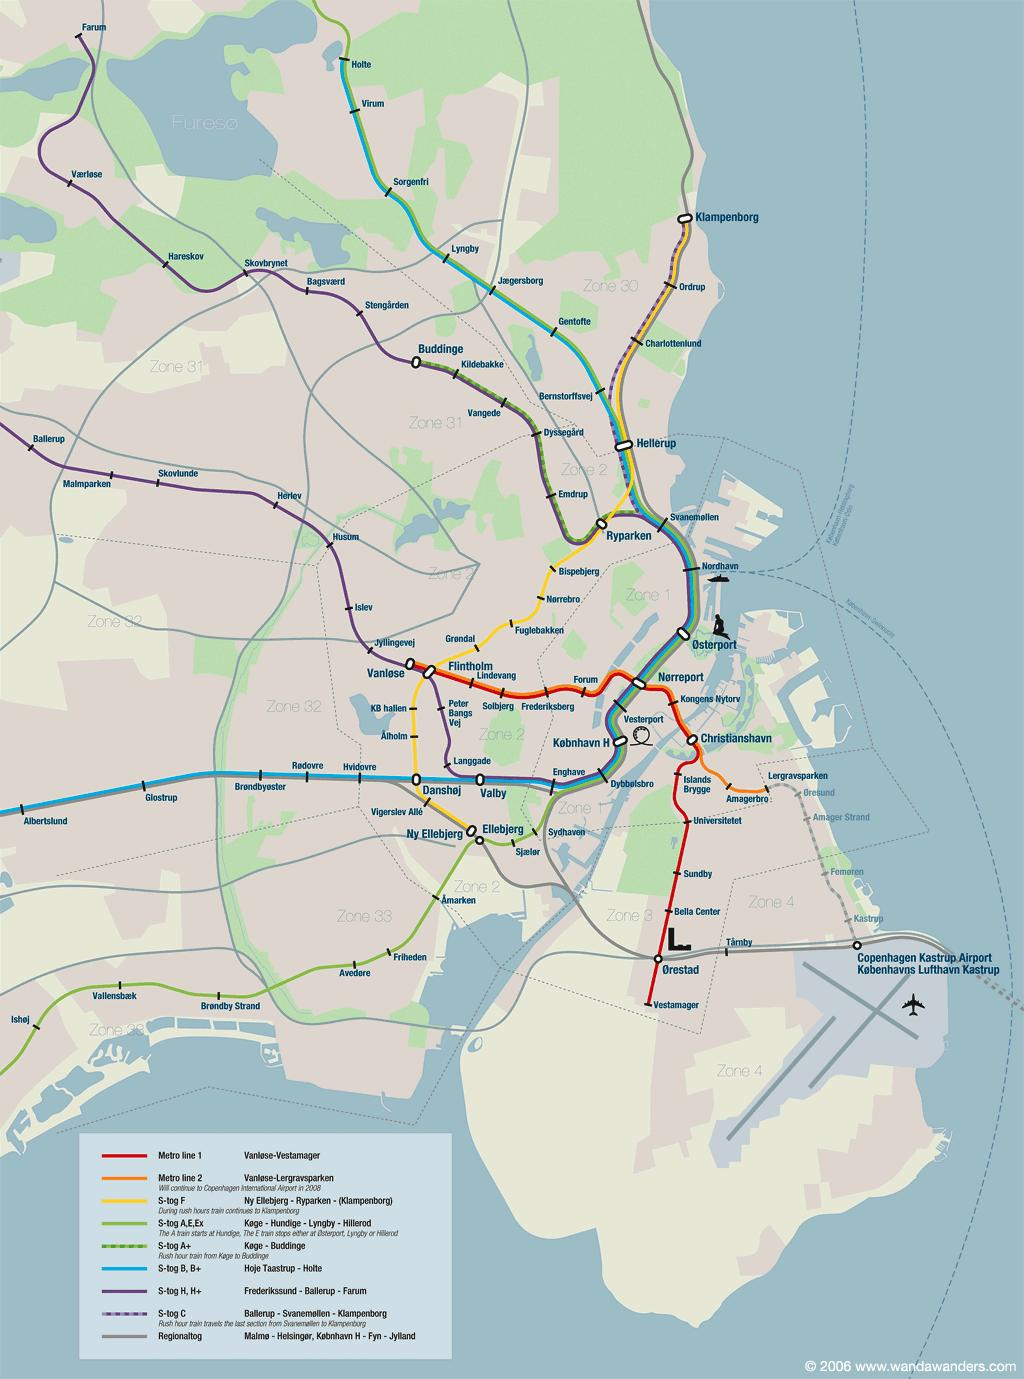 a train subway map with Mapa Plano Copenhague on Mapa Metro De Copenhague S Train besides Index as well Yamanote Line Tokyo besides Chengdu likewise Berlin Neighborhood Map.